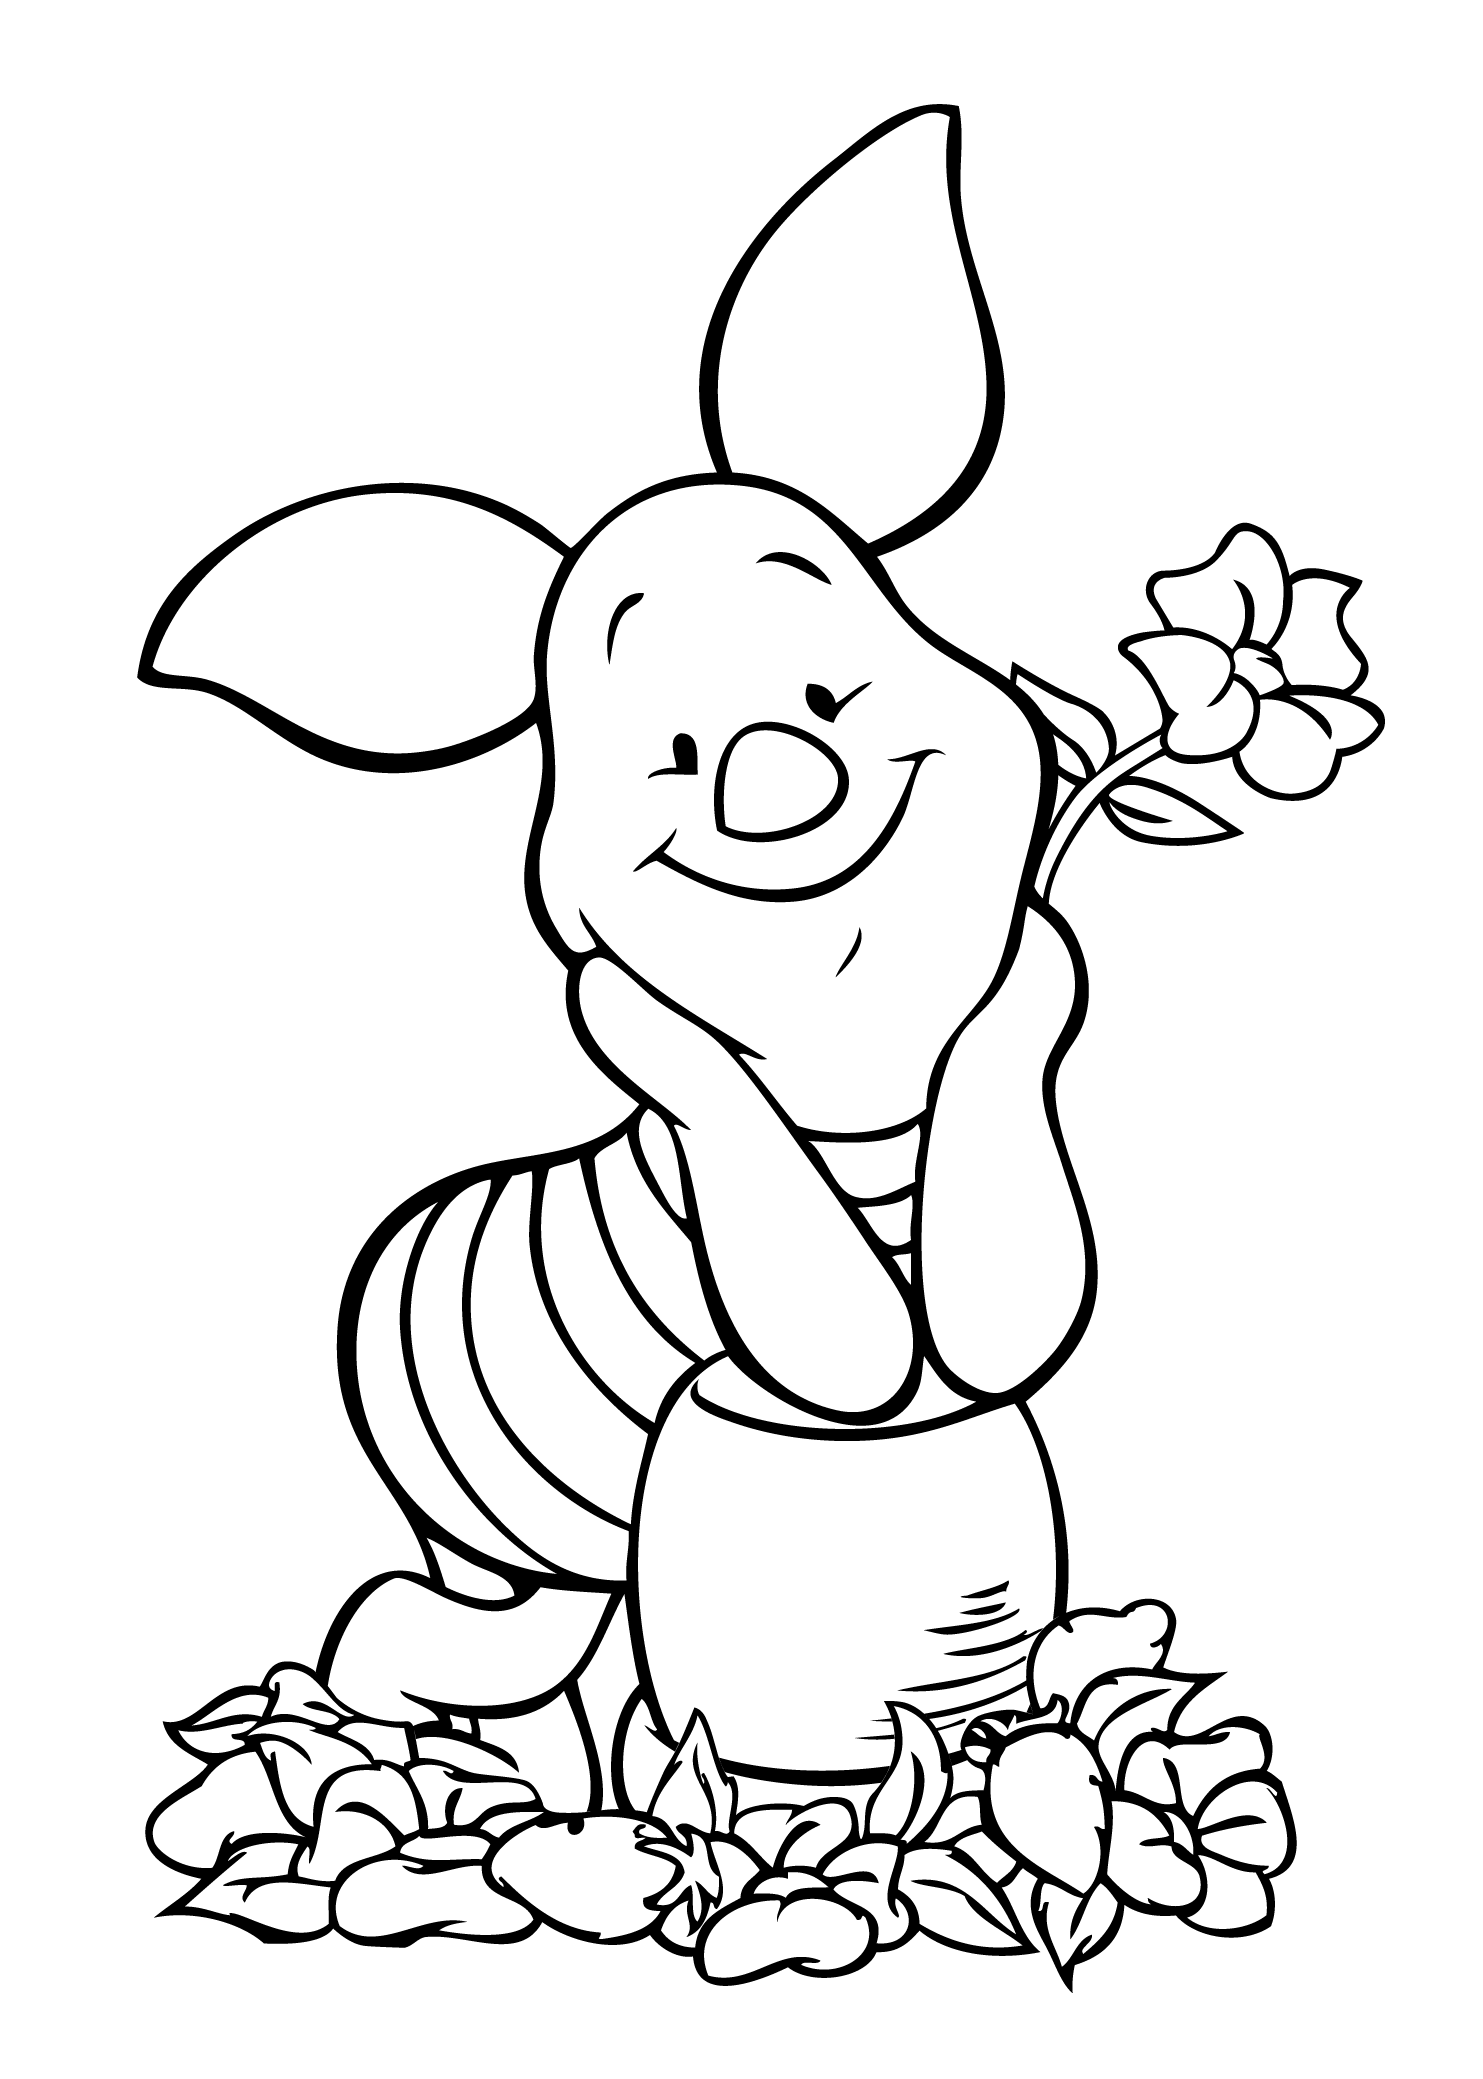 pinkalicious coloring pages to print - photo#27